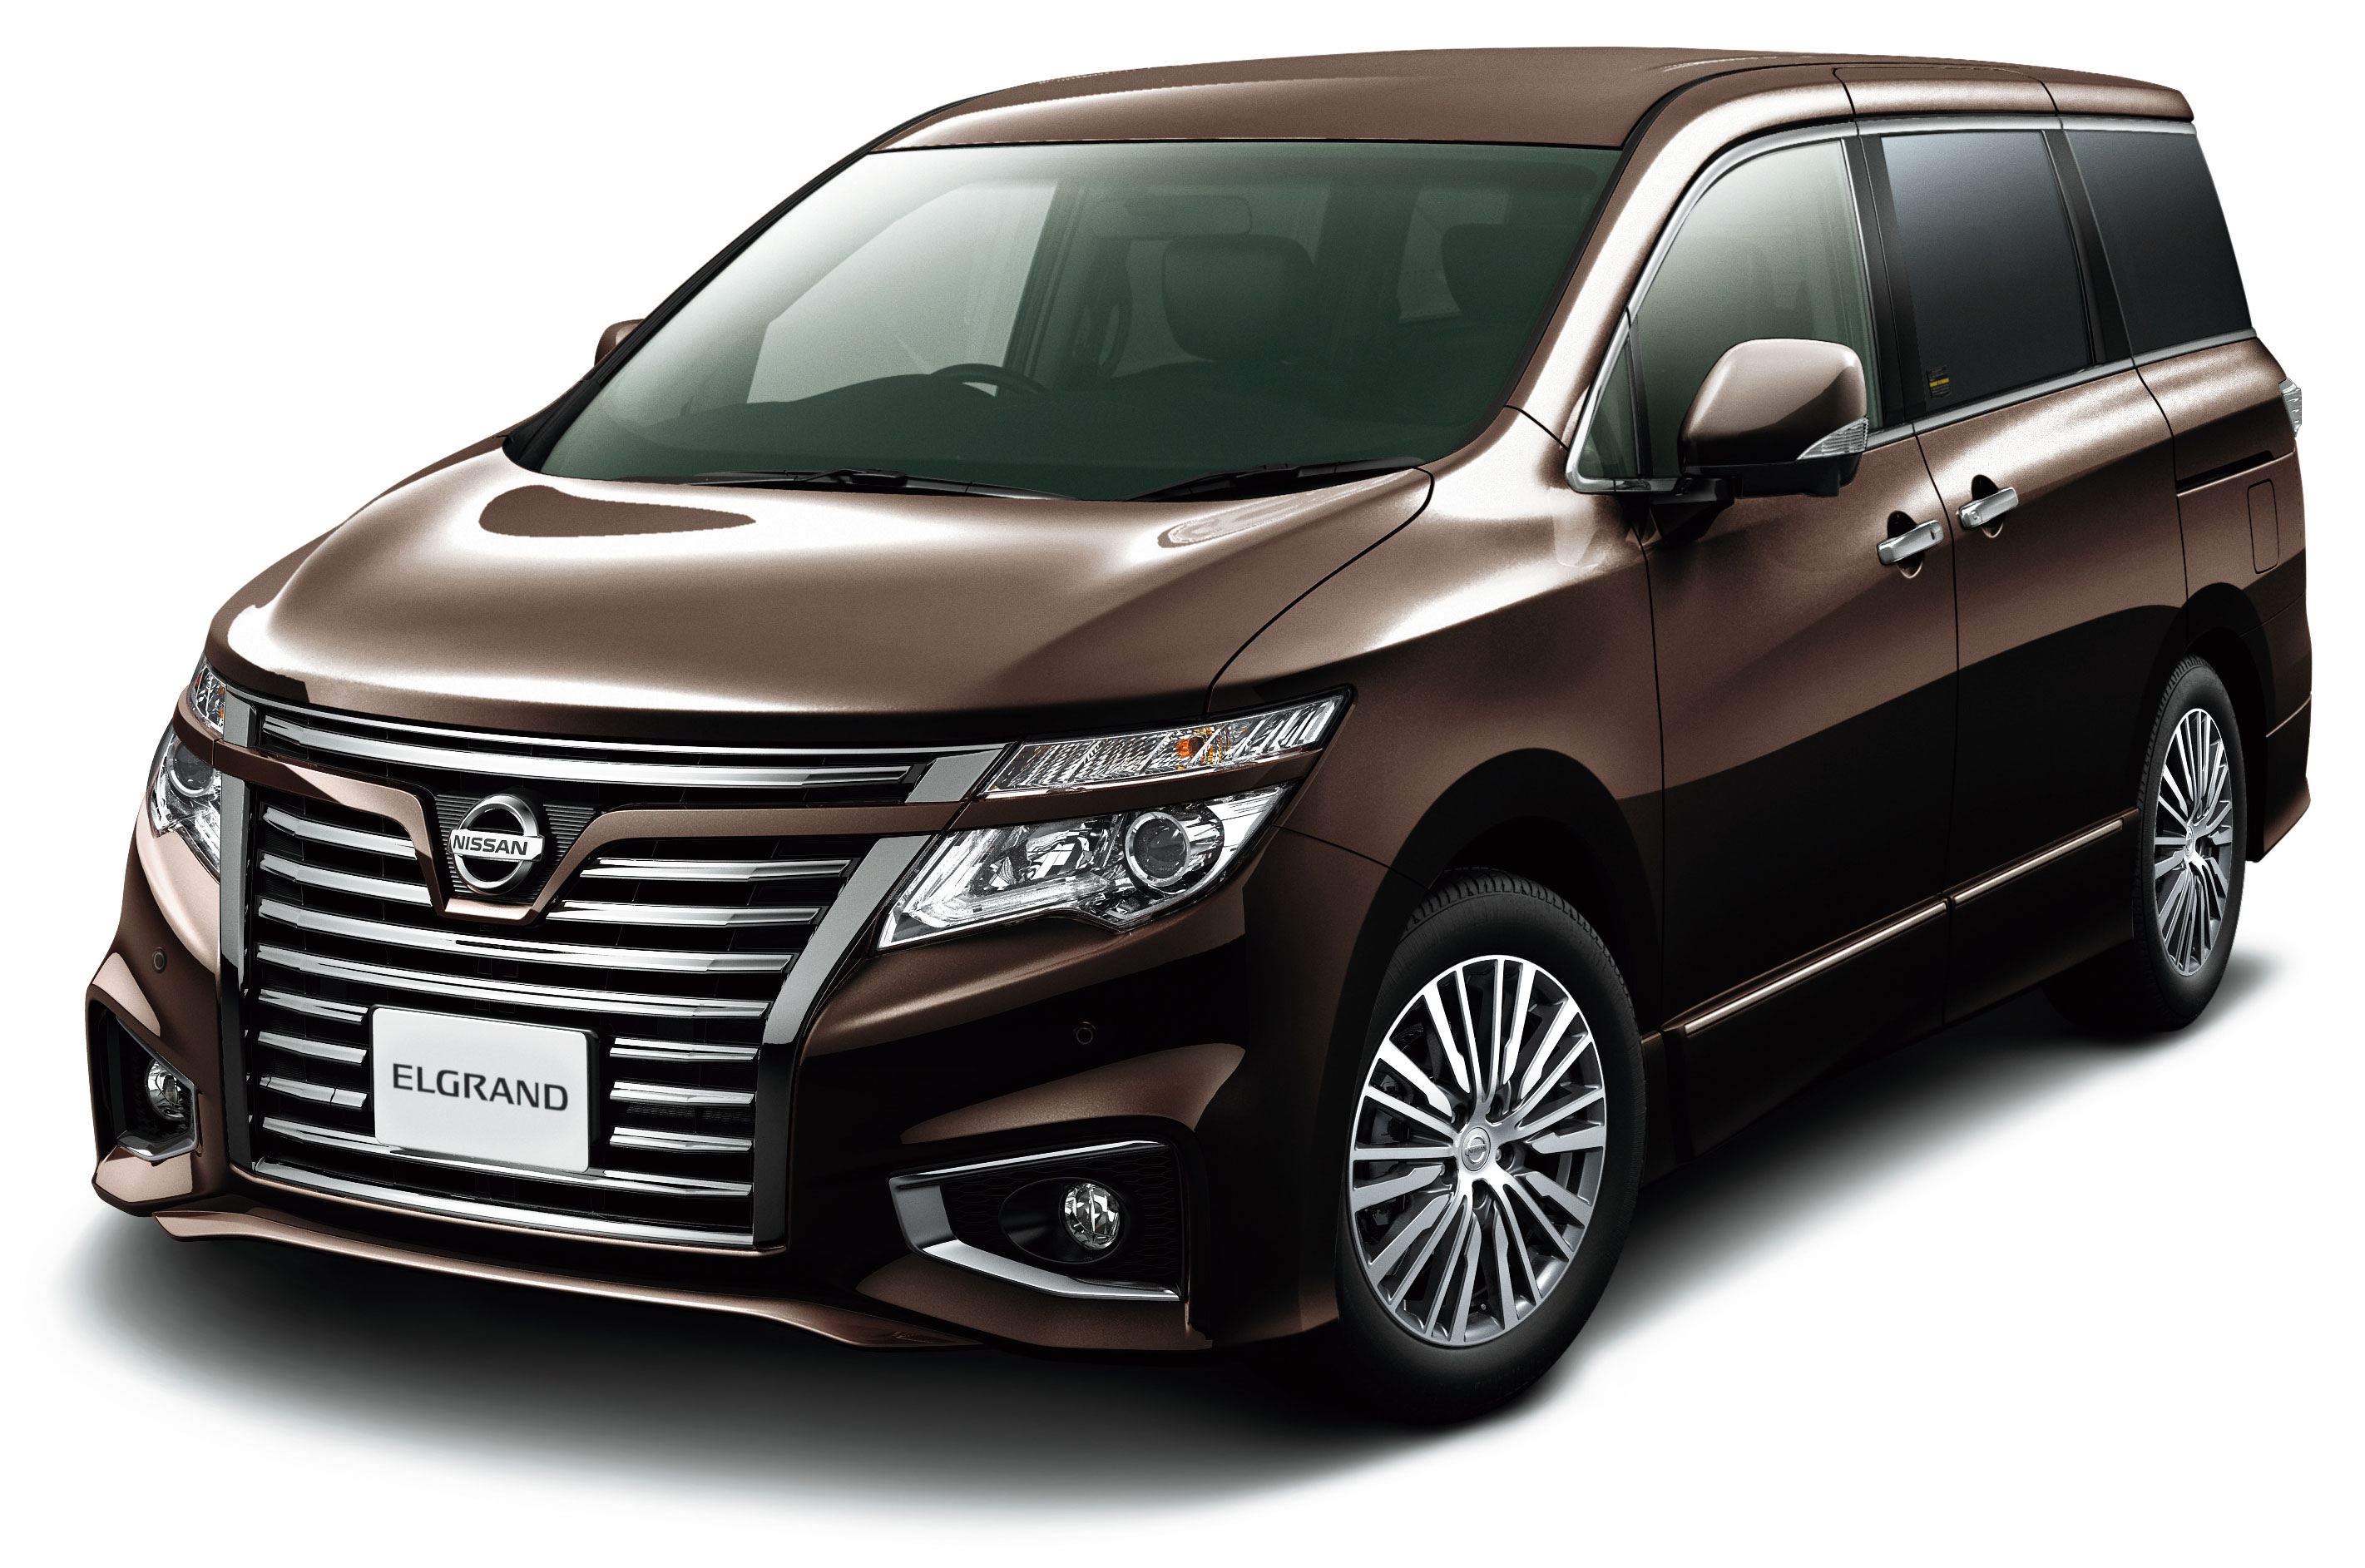 2014 nissan elgrand facelift has the biggest grille ever. Black Bedroom Furniture Sets. Home Design Ideas